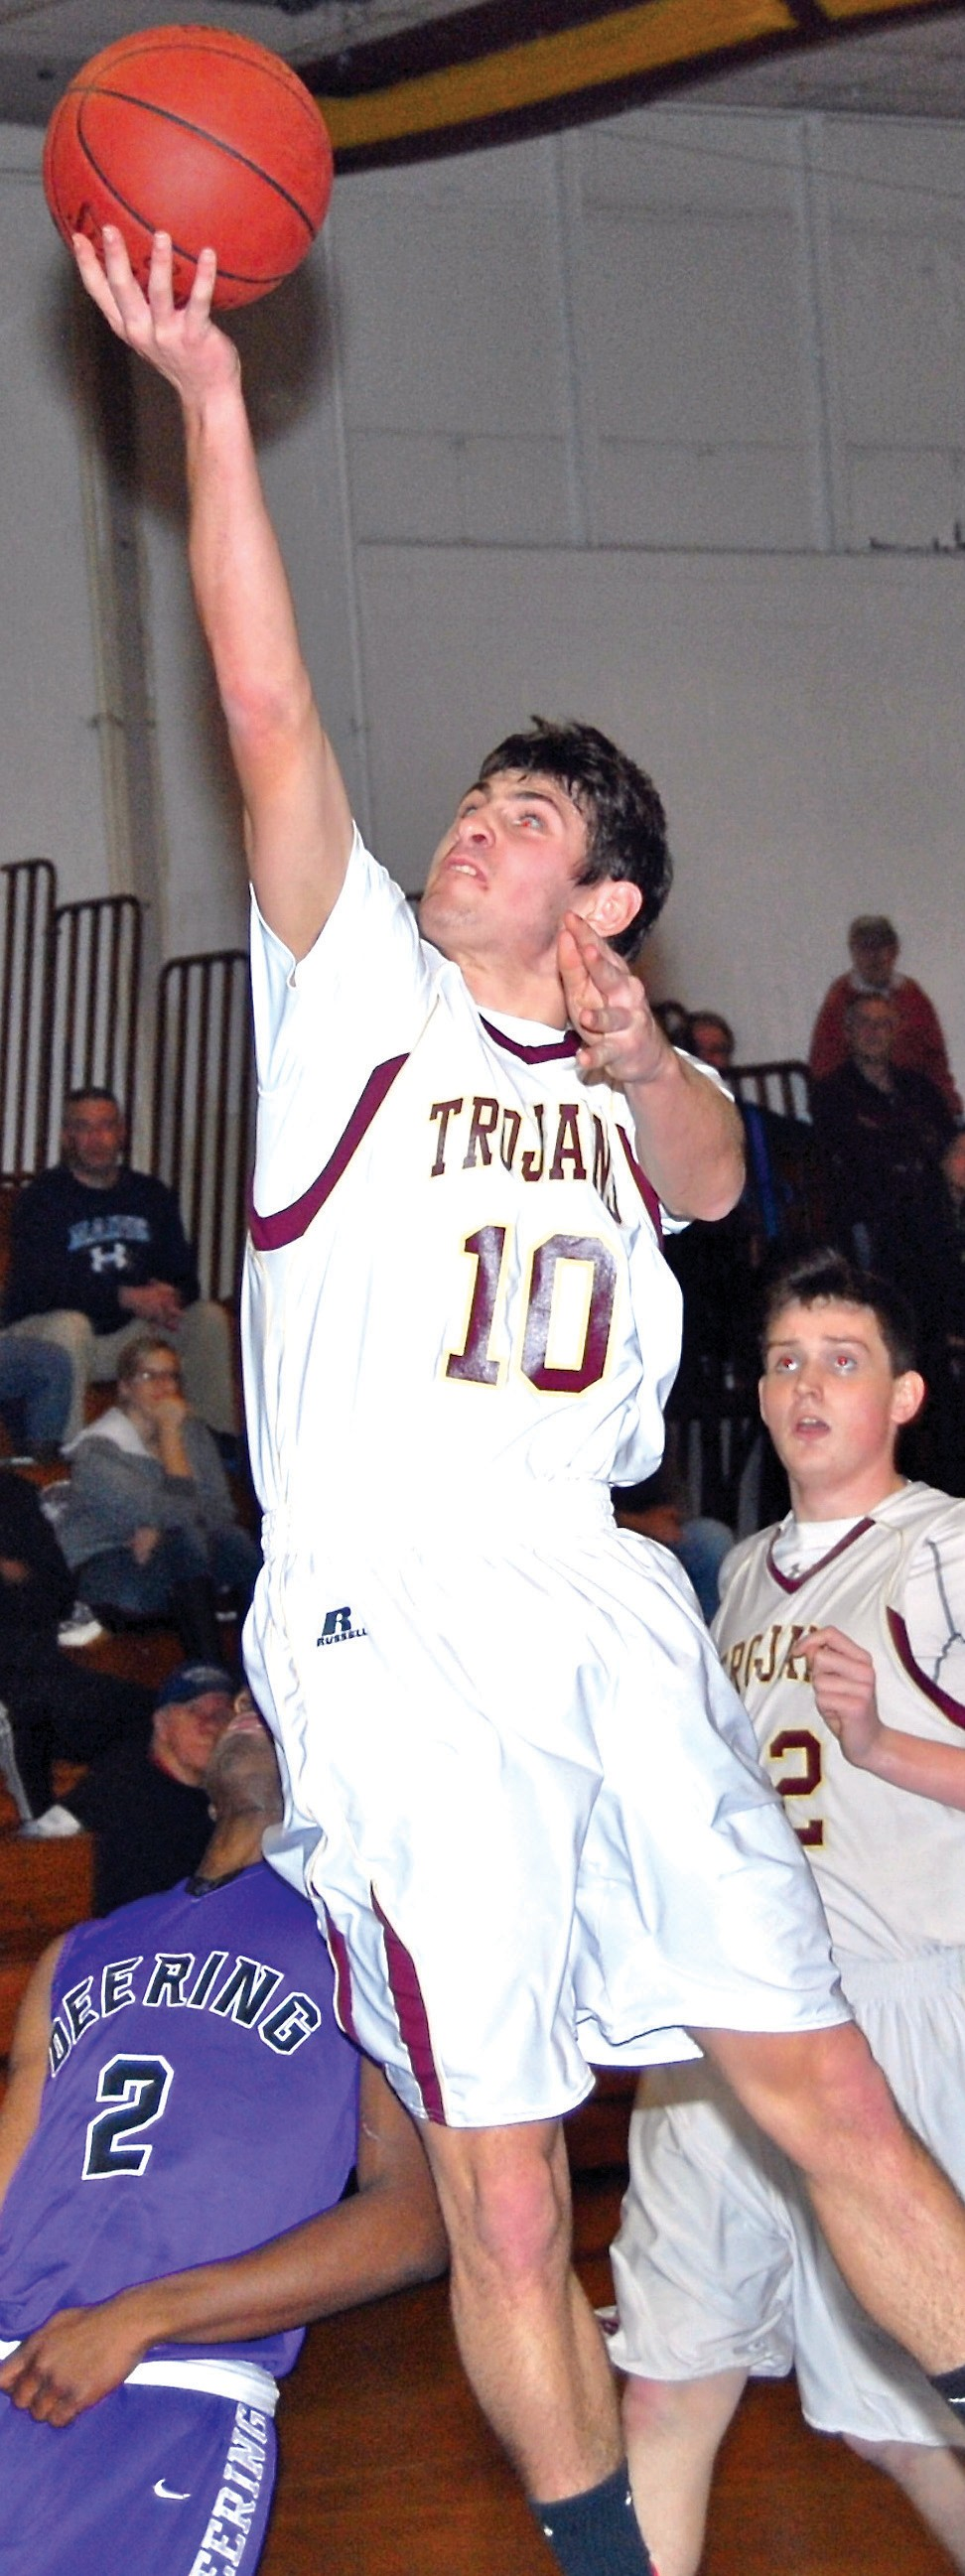 Above: Thornton Academy's Ben Lambert flies to the basket for a layup during Tuesday night's game against Deering. Left: TA's Corey Hart gets a shot off over Deering's Jean Claude Butera in the second half on Tuesday night.